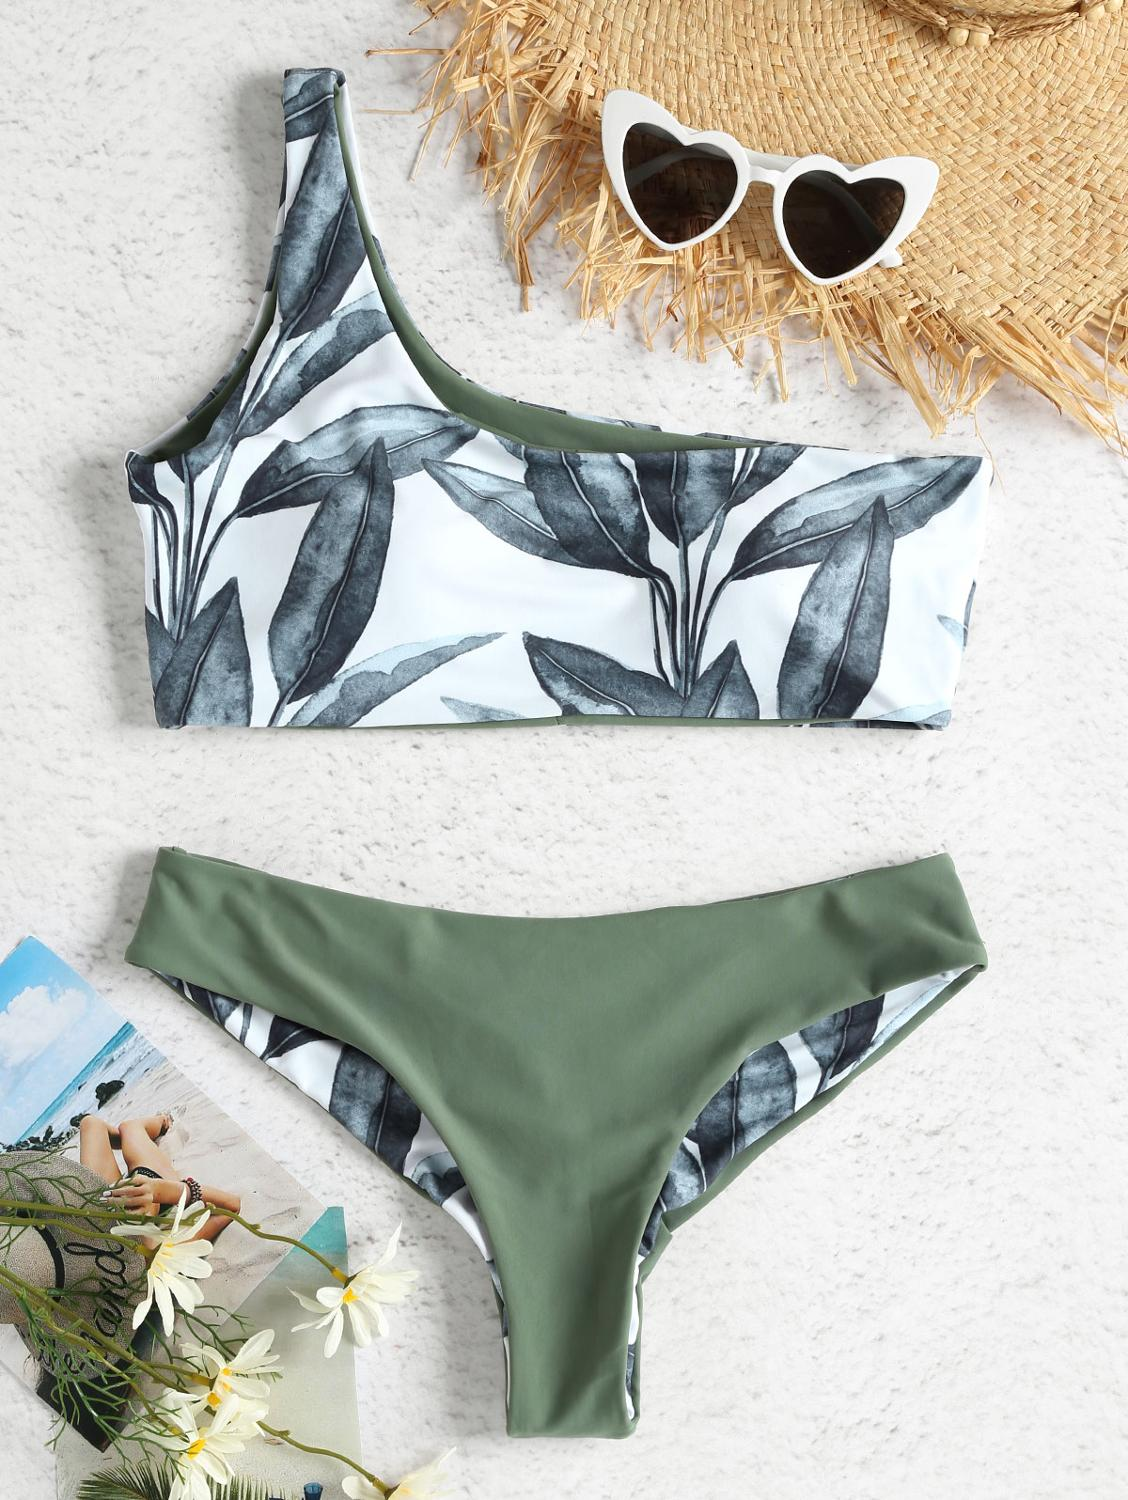 ZAFUL Women New One Shoulder Leaves Print Bikini Sexy Low Waisted Swimwear Swimsuit Summer Beach Bikini 2019 Biquini